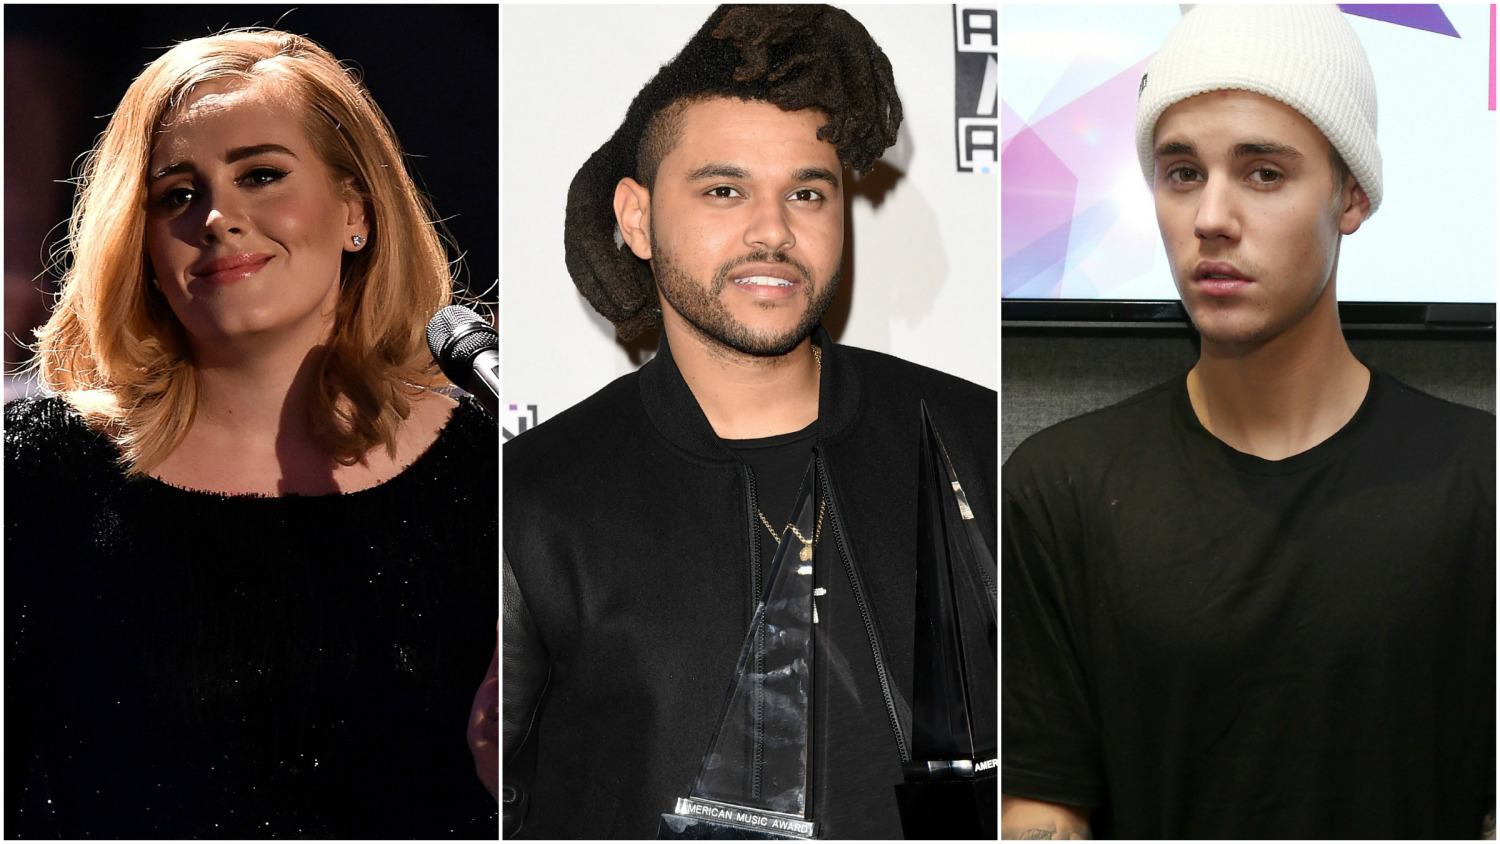 Adele the weeknd justin bieber